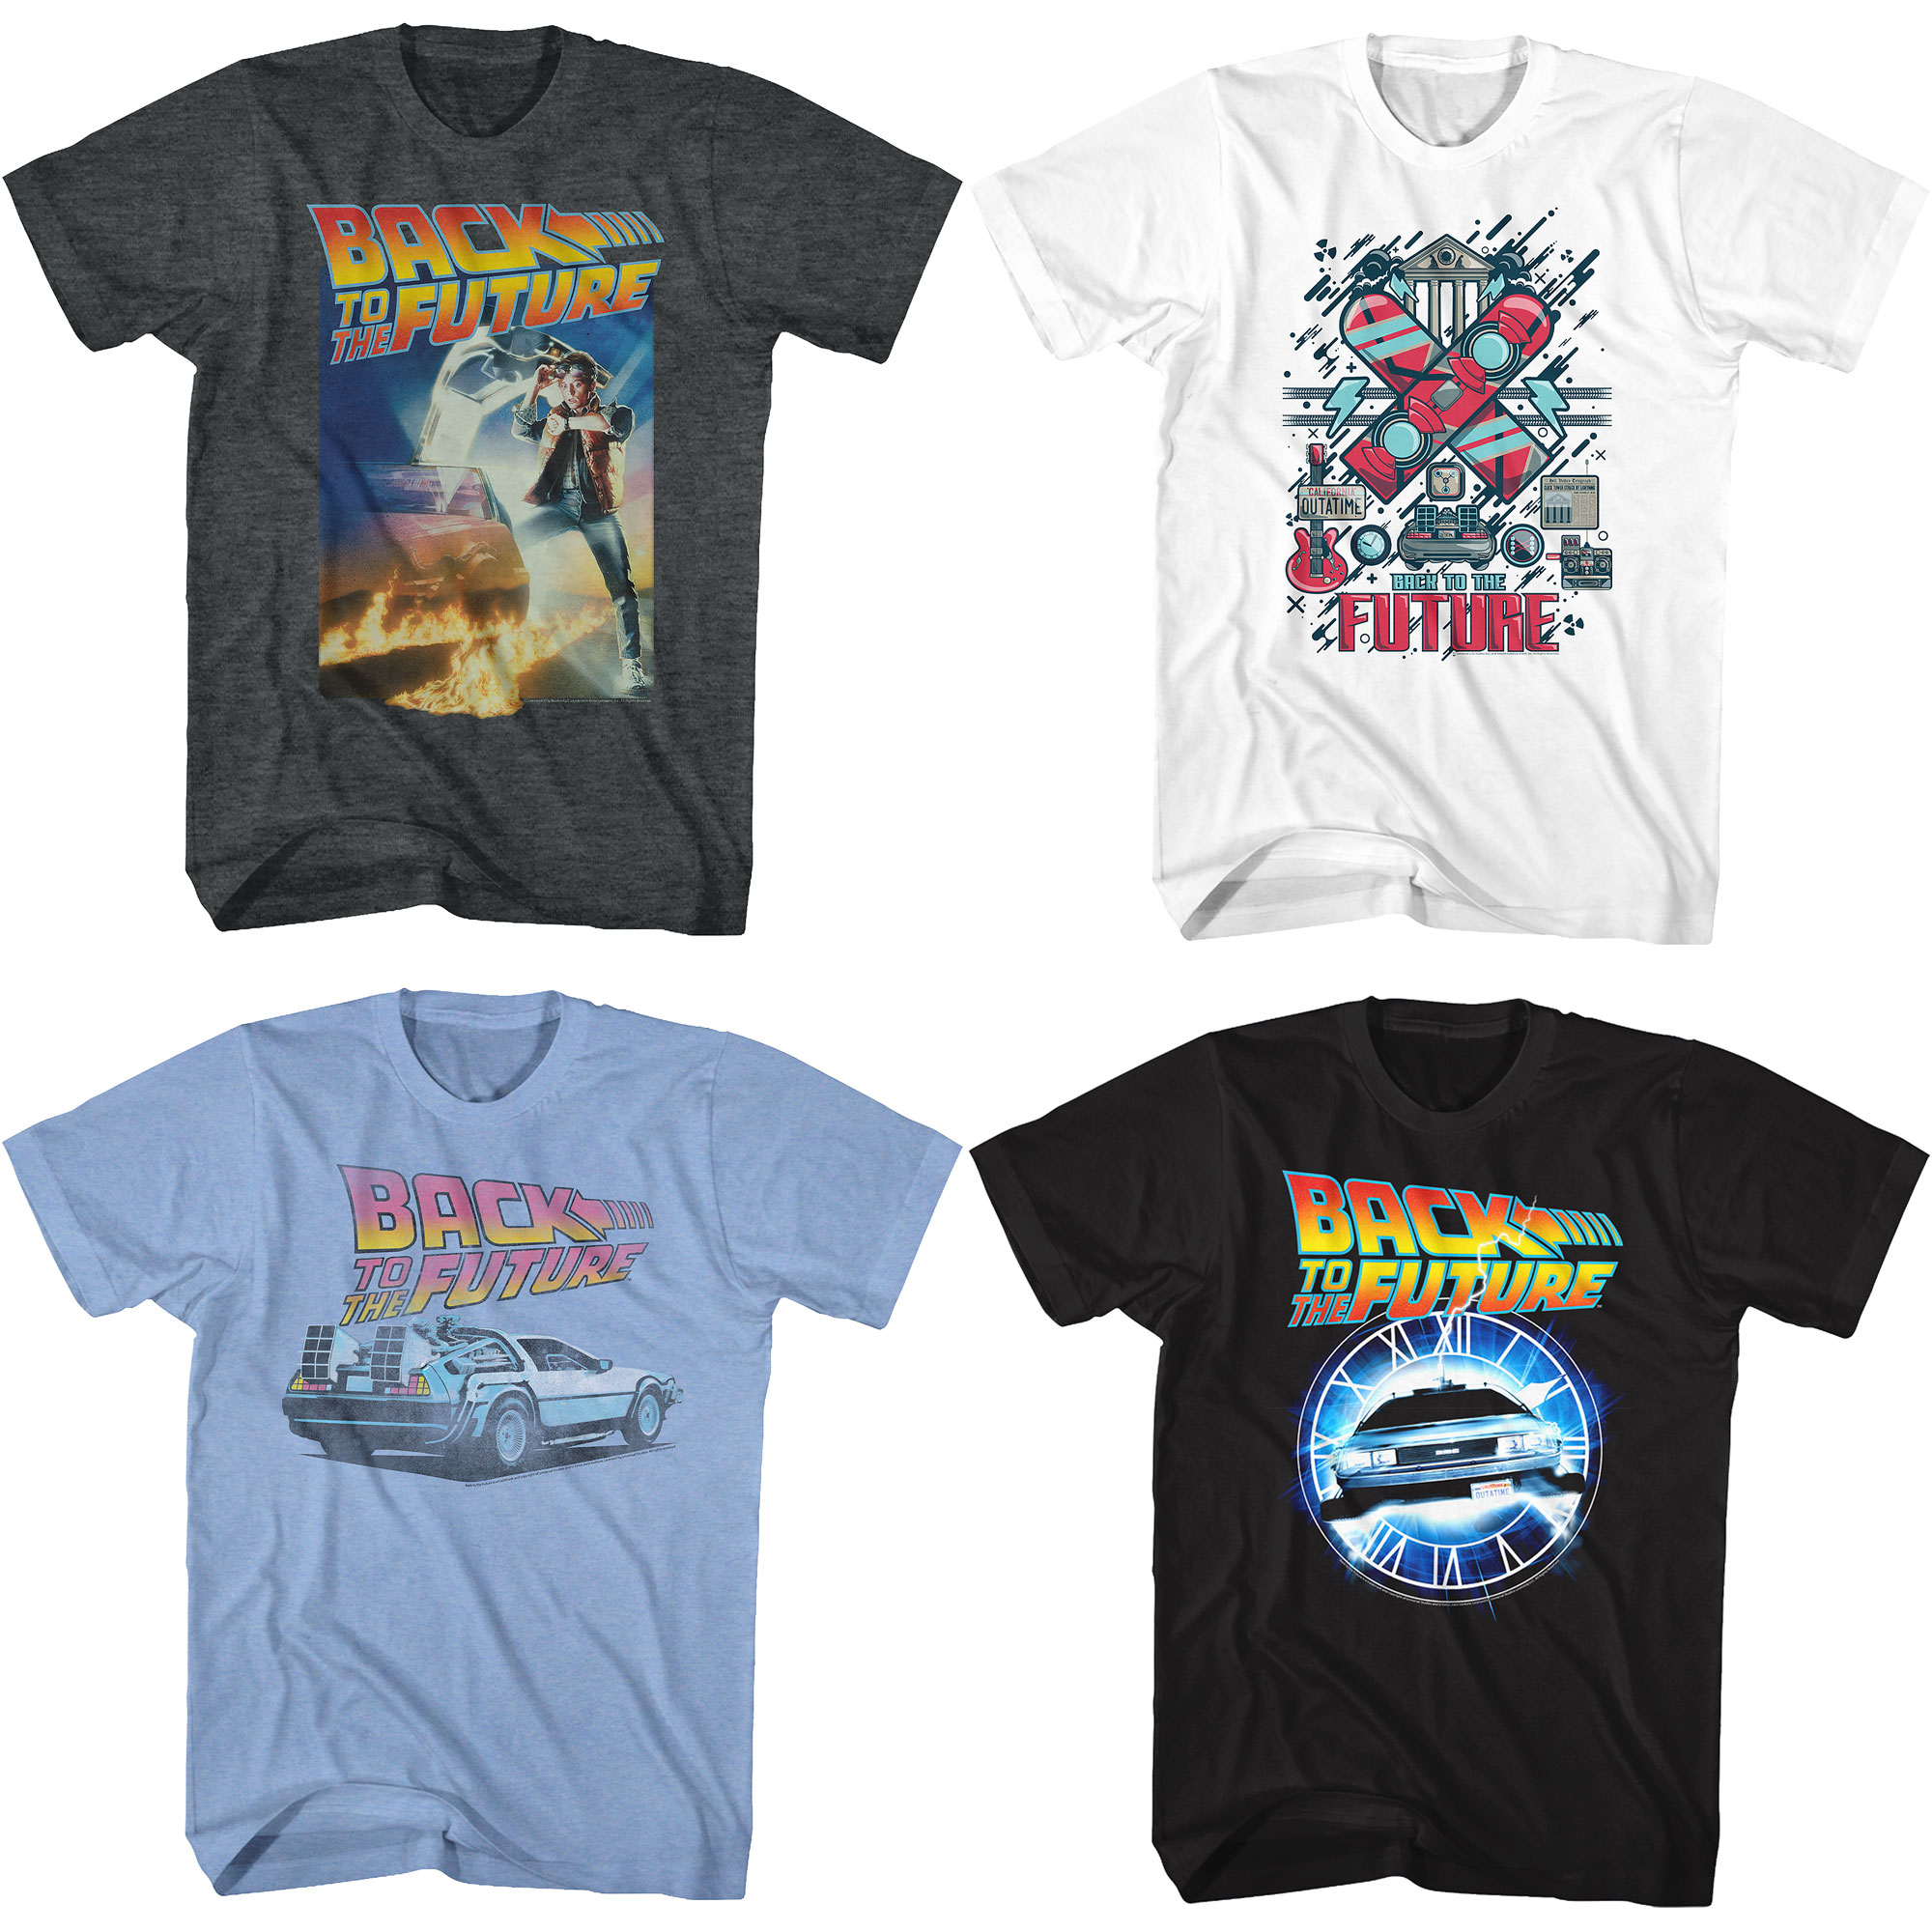 nike-adapt-bb-2-mag-back-to-the-future-shirts